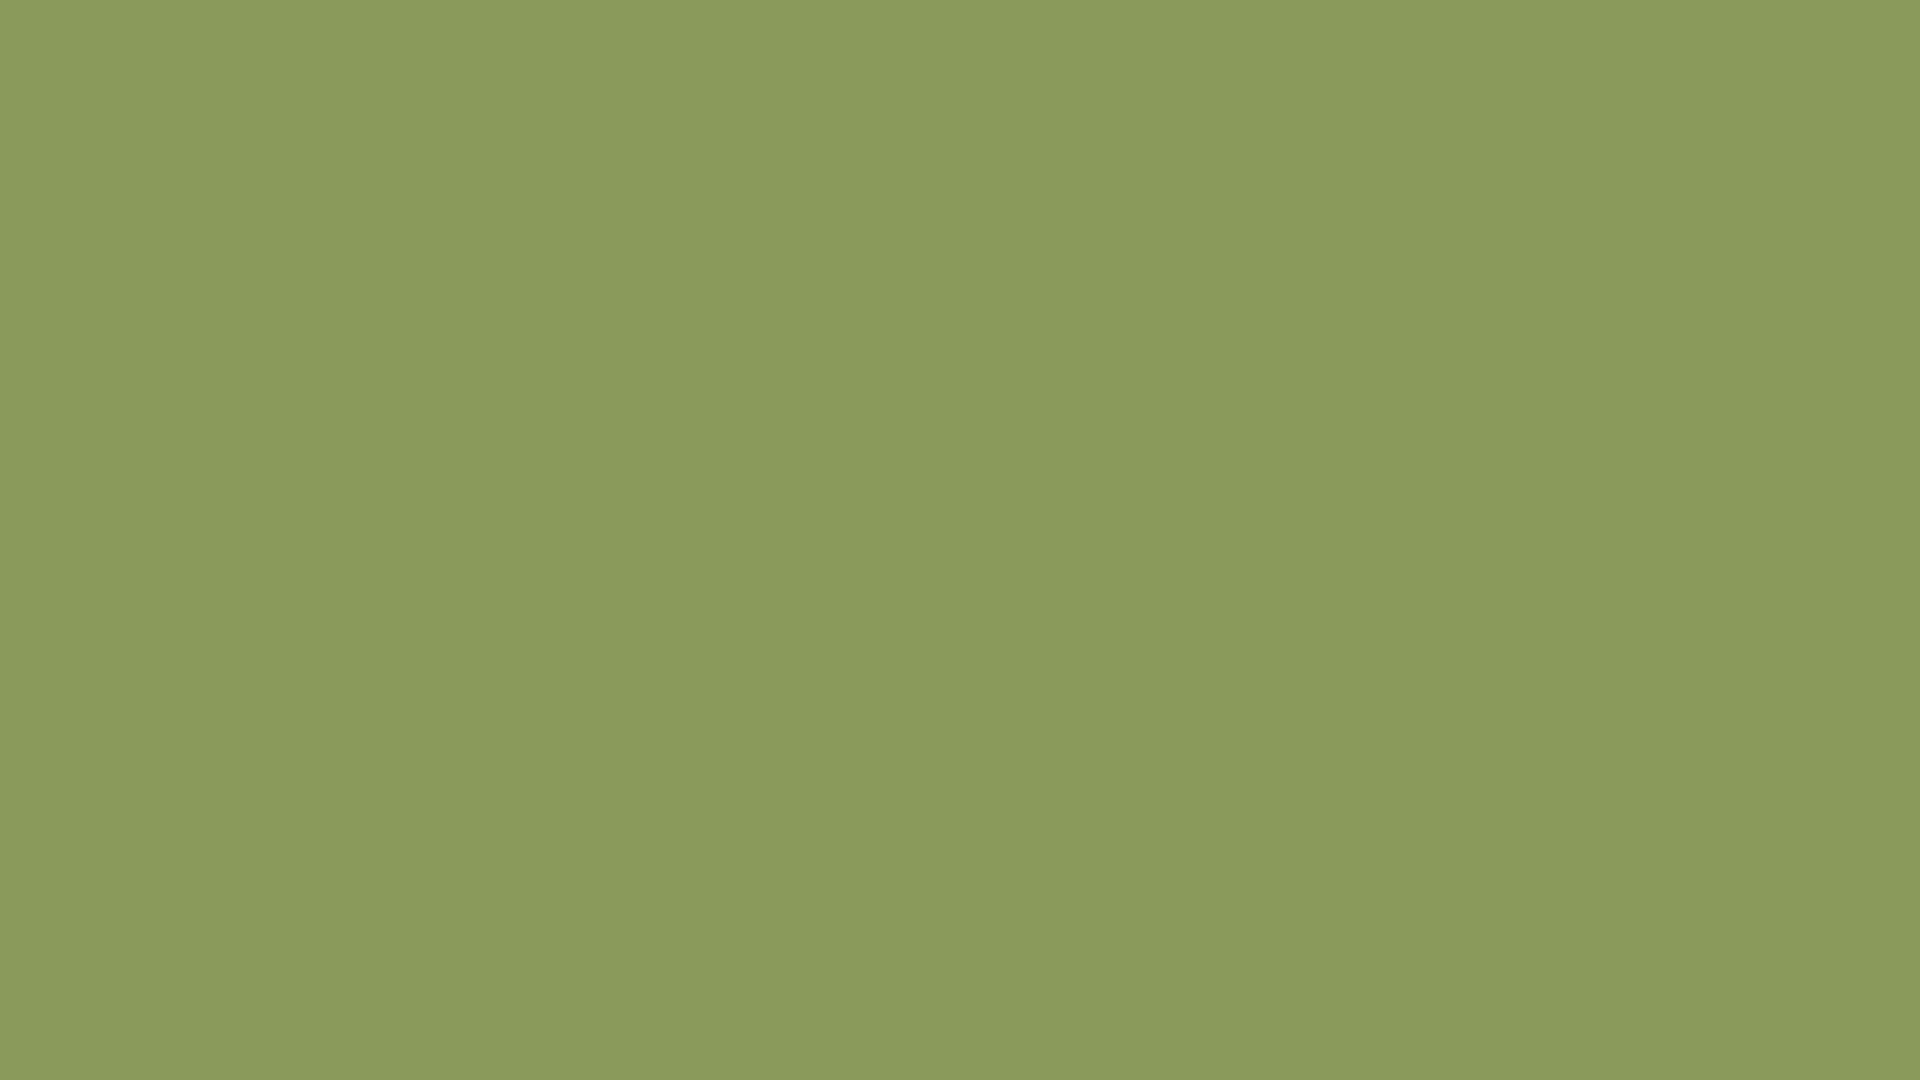 1920x1080 Moss Green Solid Color Background